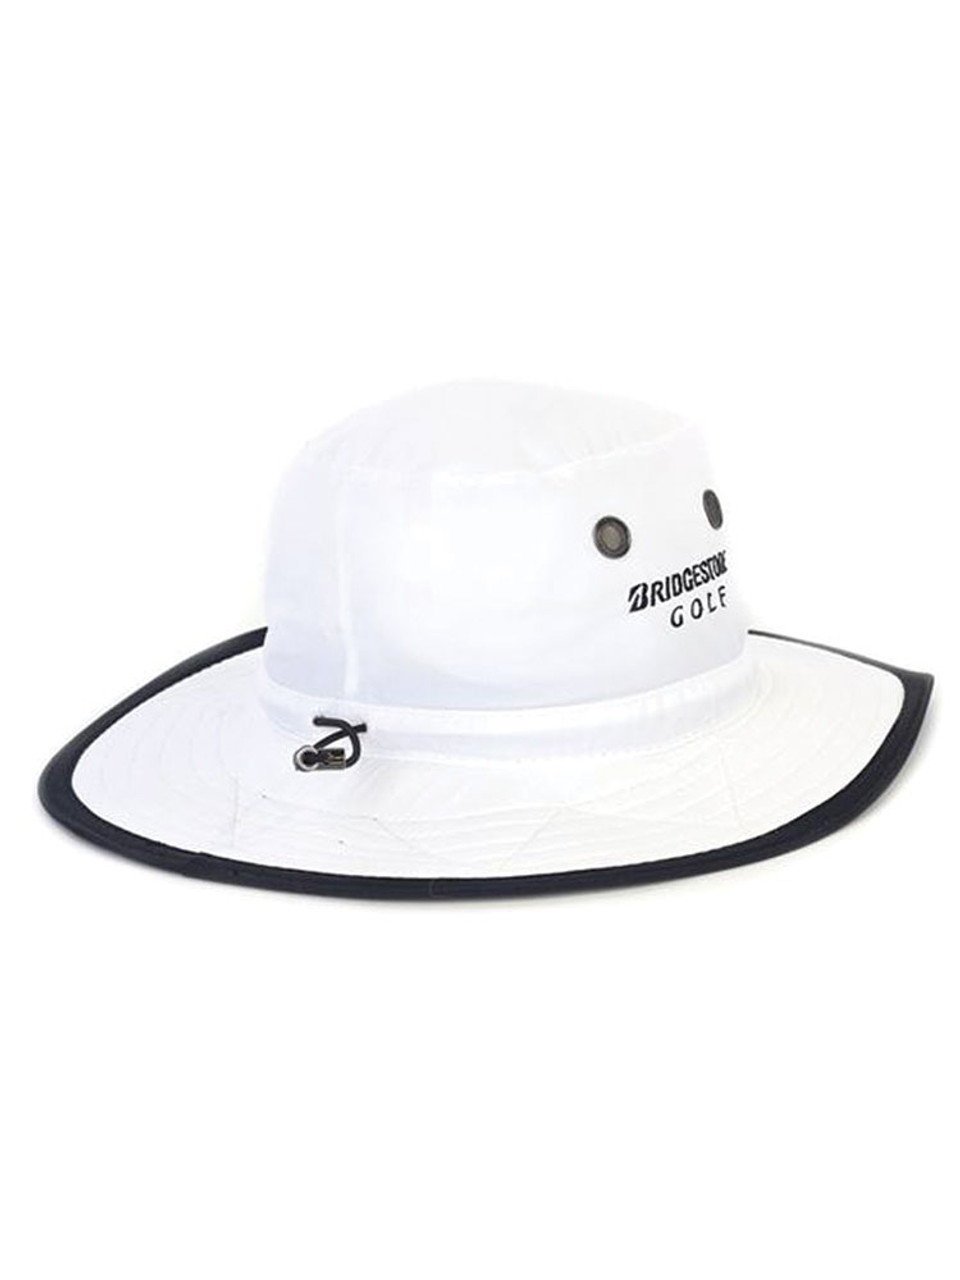 Bridgestone Boonie Hat - White - Mens For Sale  4c28c4f0e13